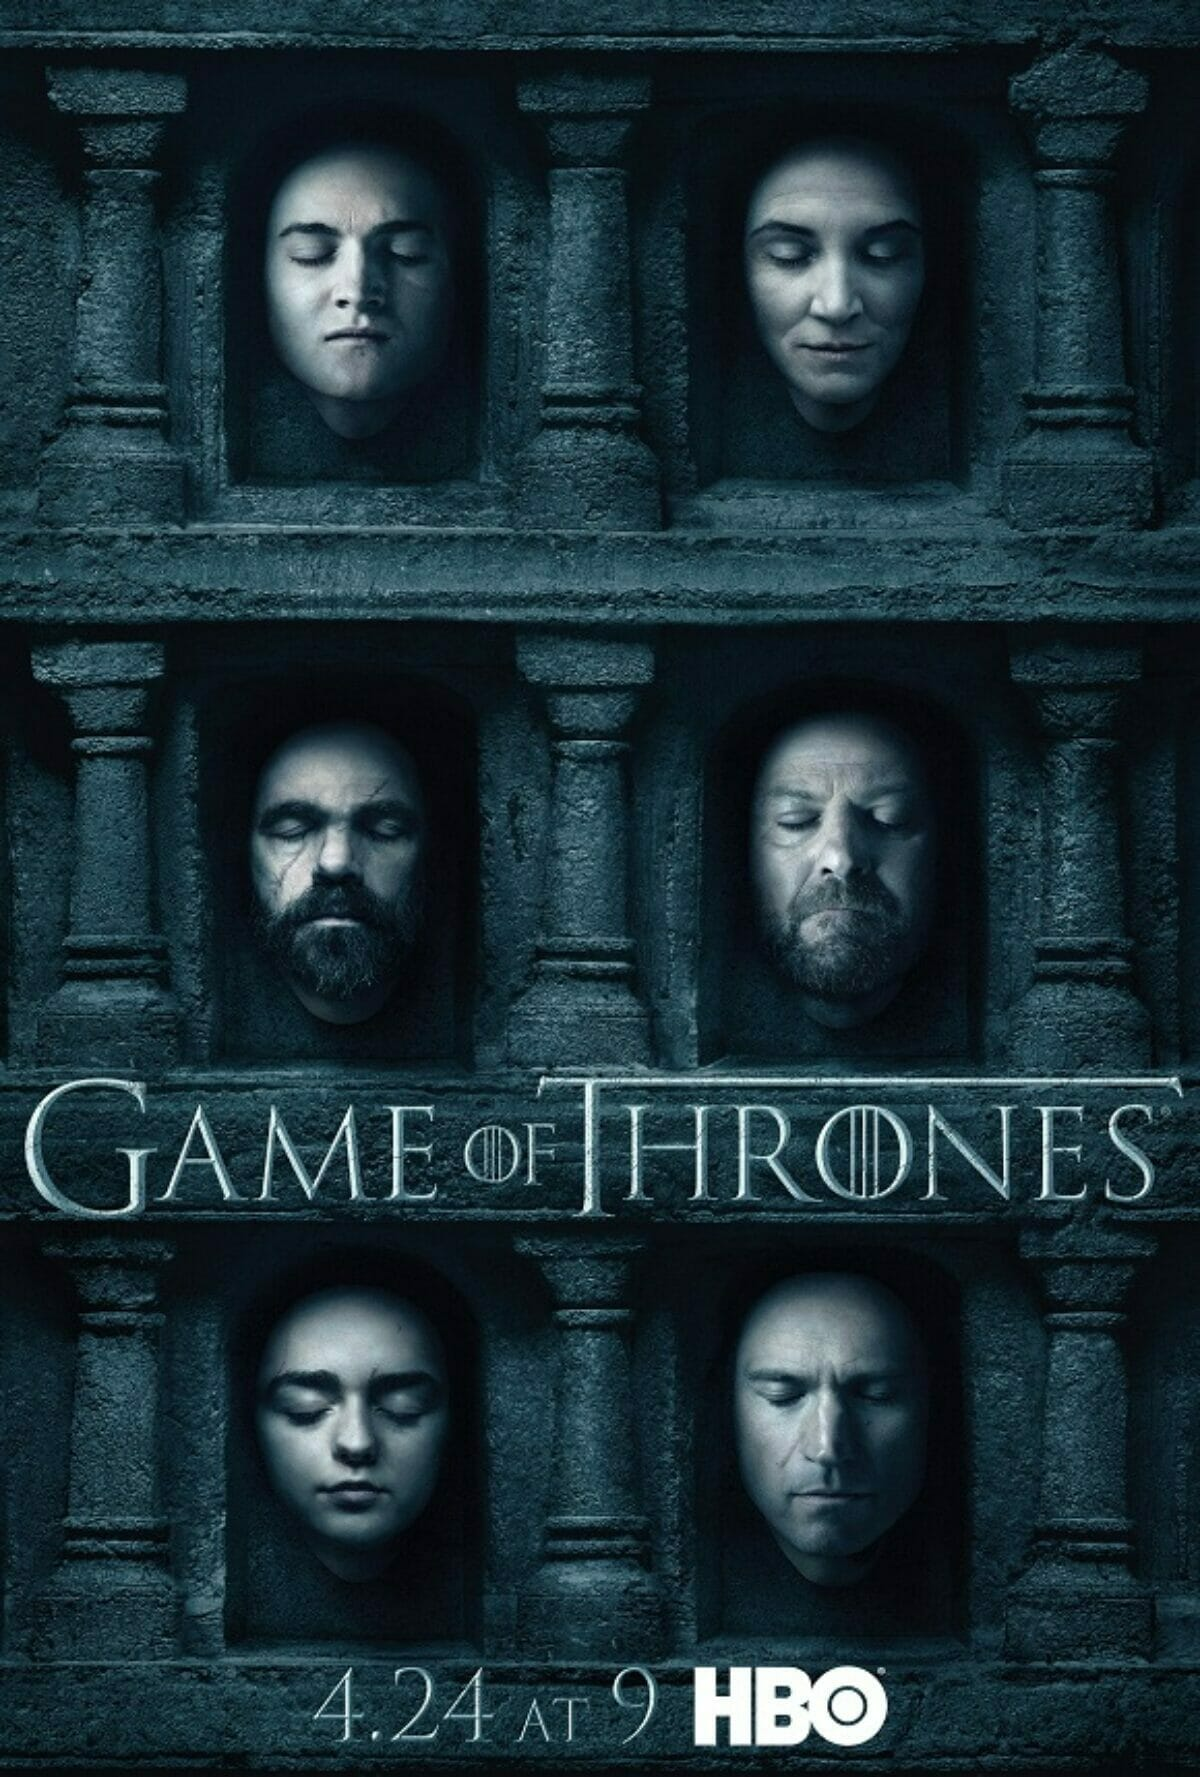 game-of-thrones-season-6-character-poster